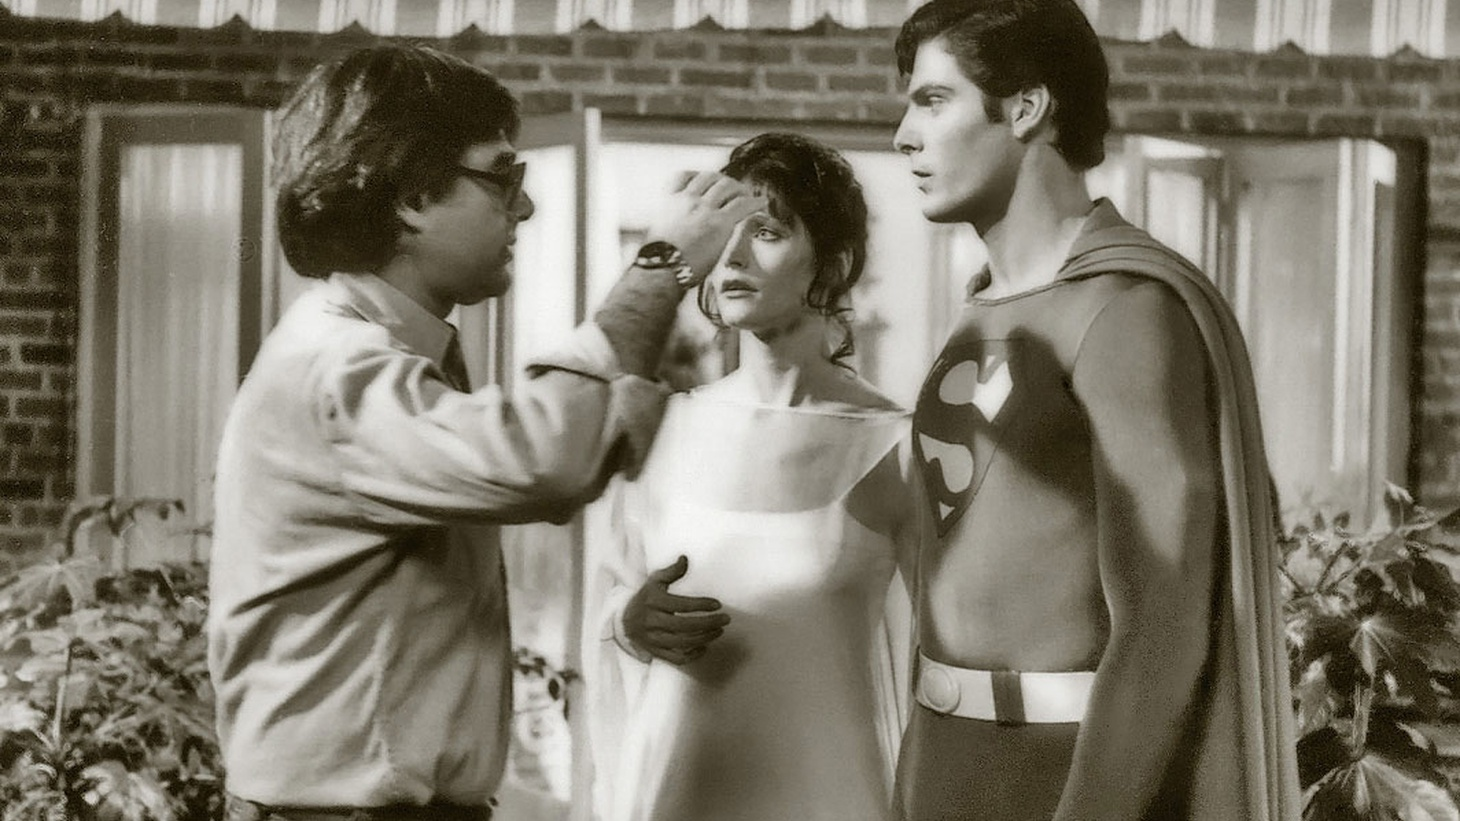 Veteran director Richard Donner talks about the adventures and behind the scenes antics that went into making the original comic book blockbuster, Superman, in 1978. Plus, an all new banter looking ahead to the big stories of 2017.